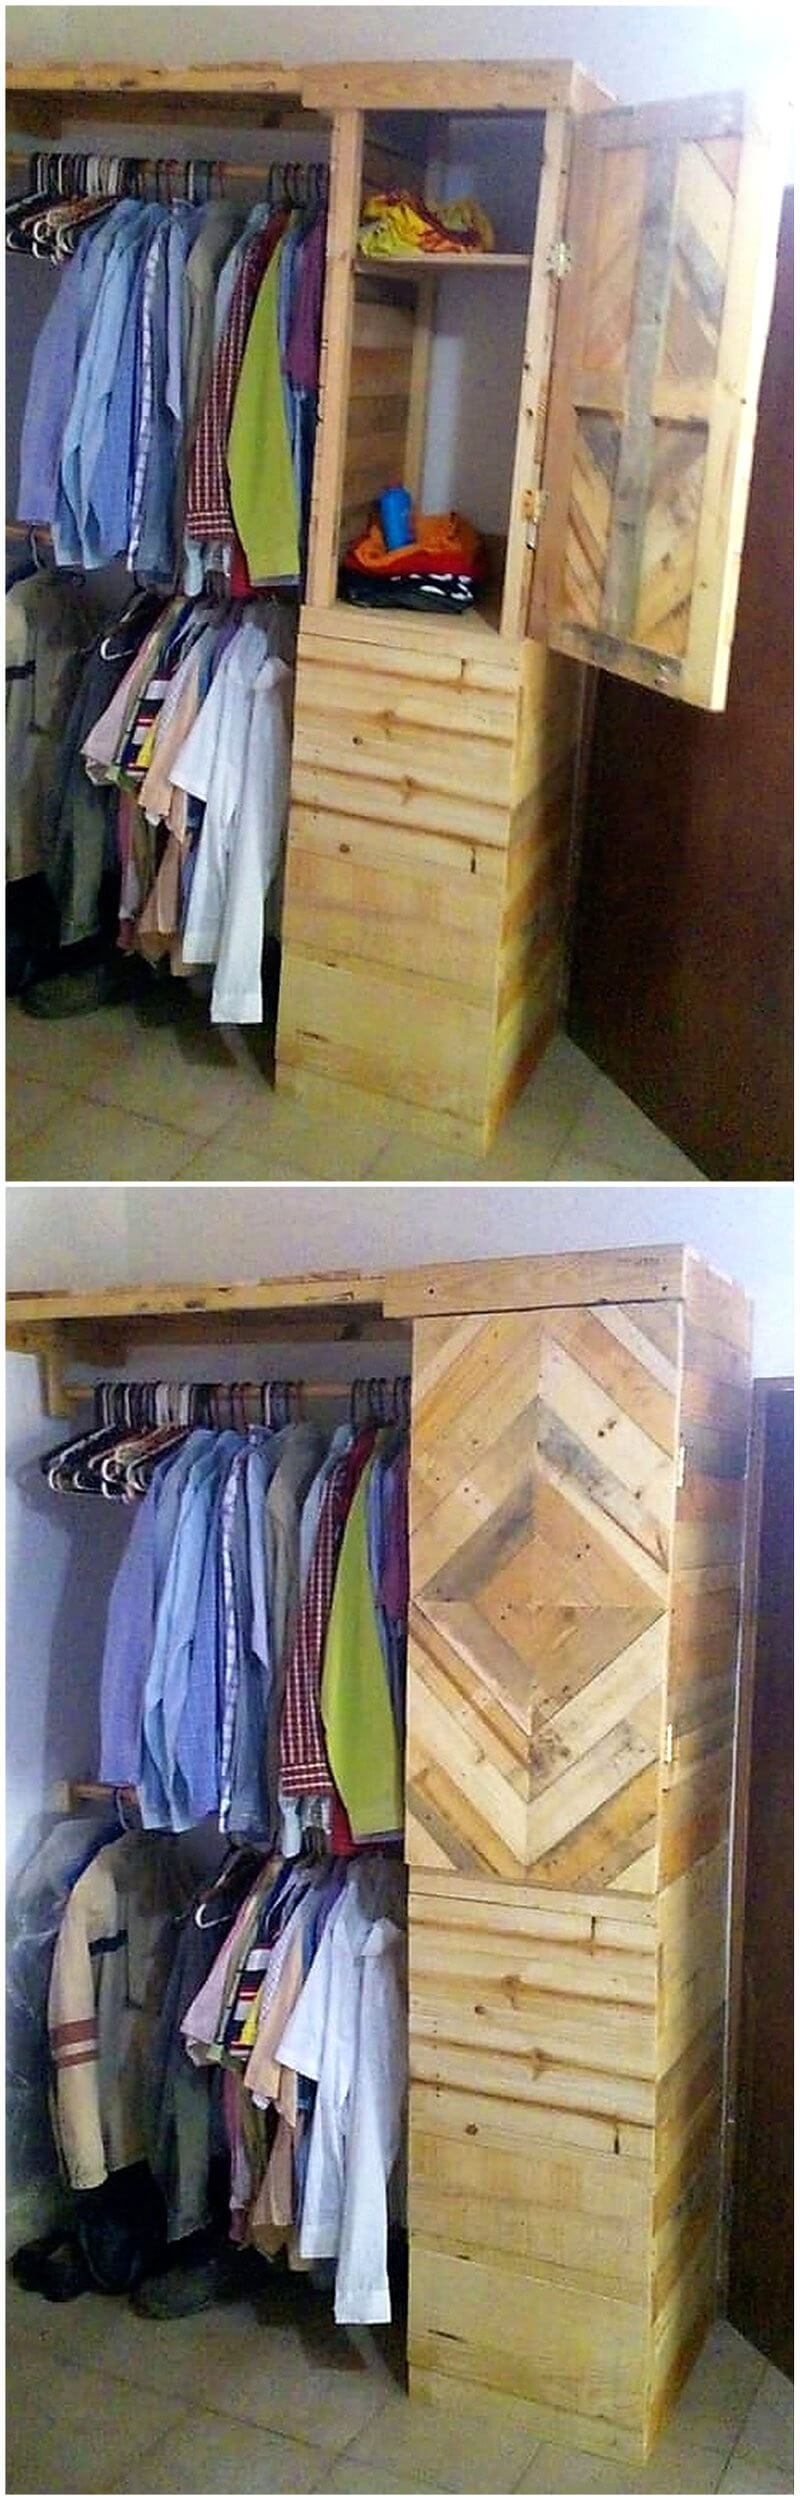 wooden pallet wardrobe idea